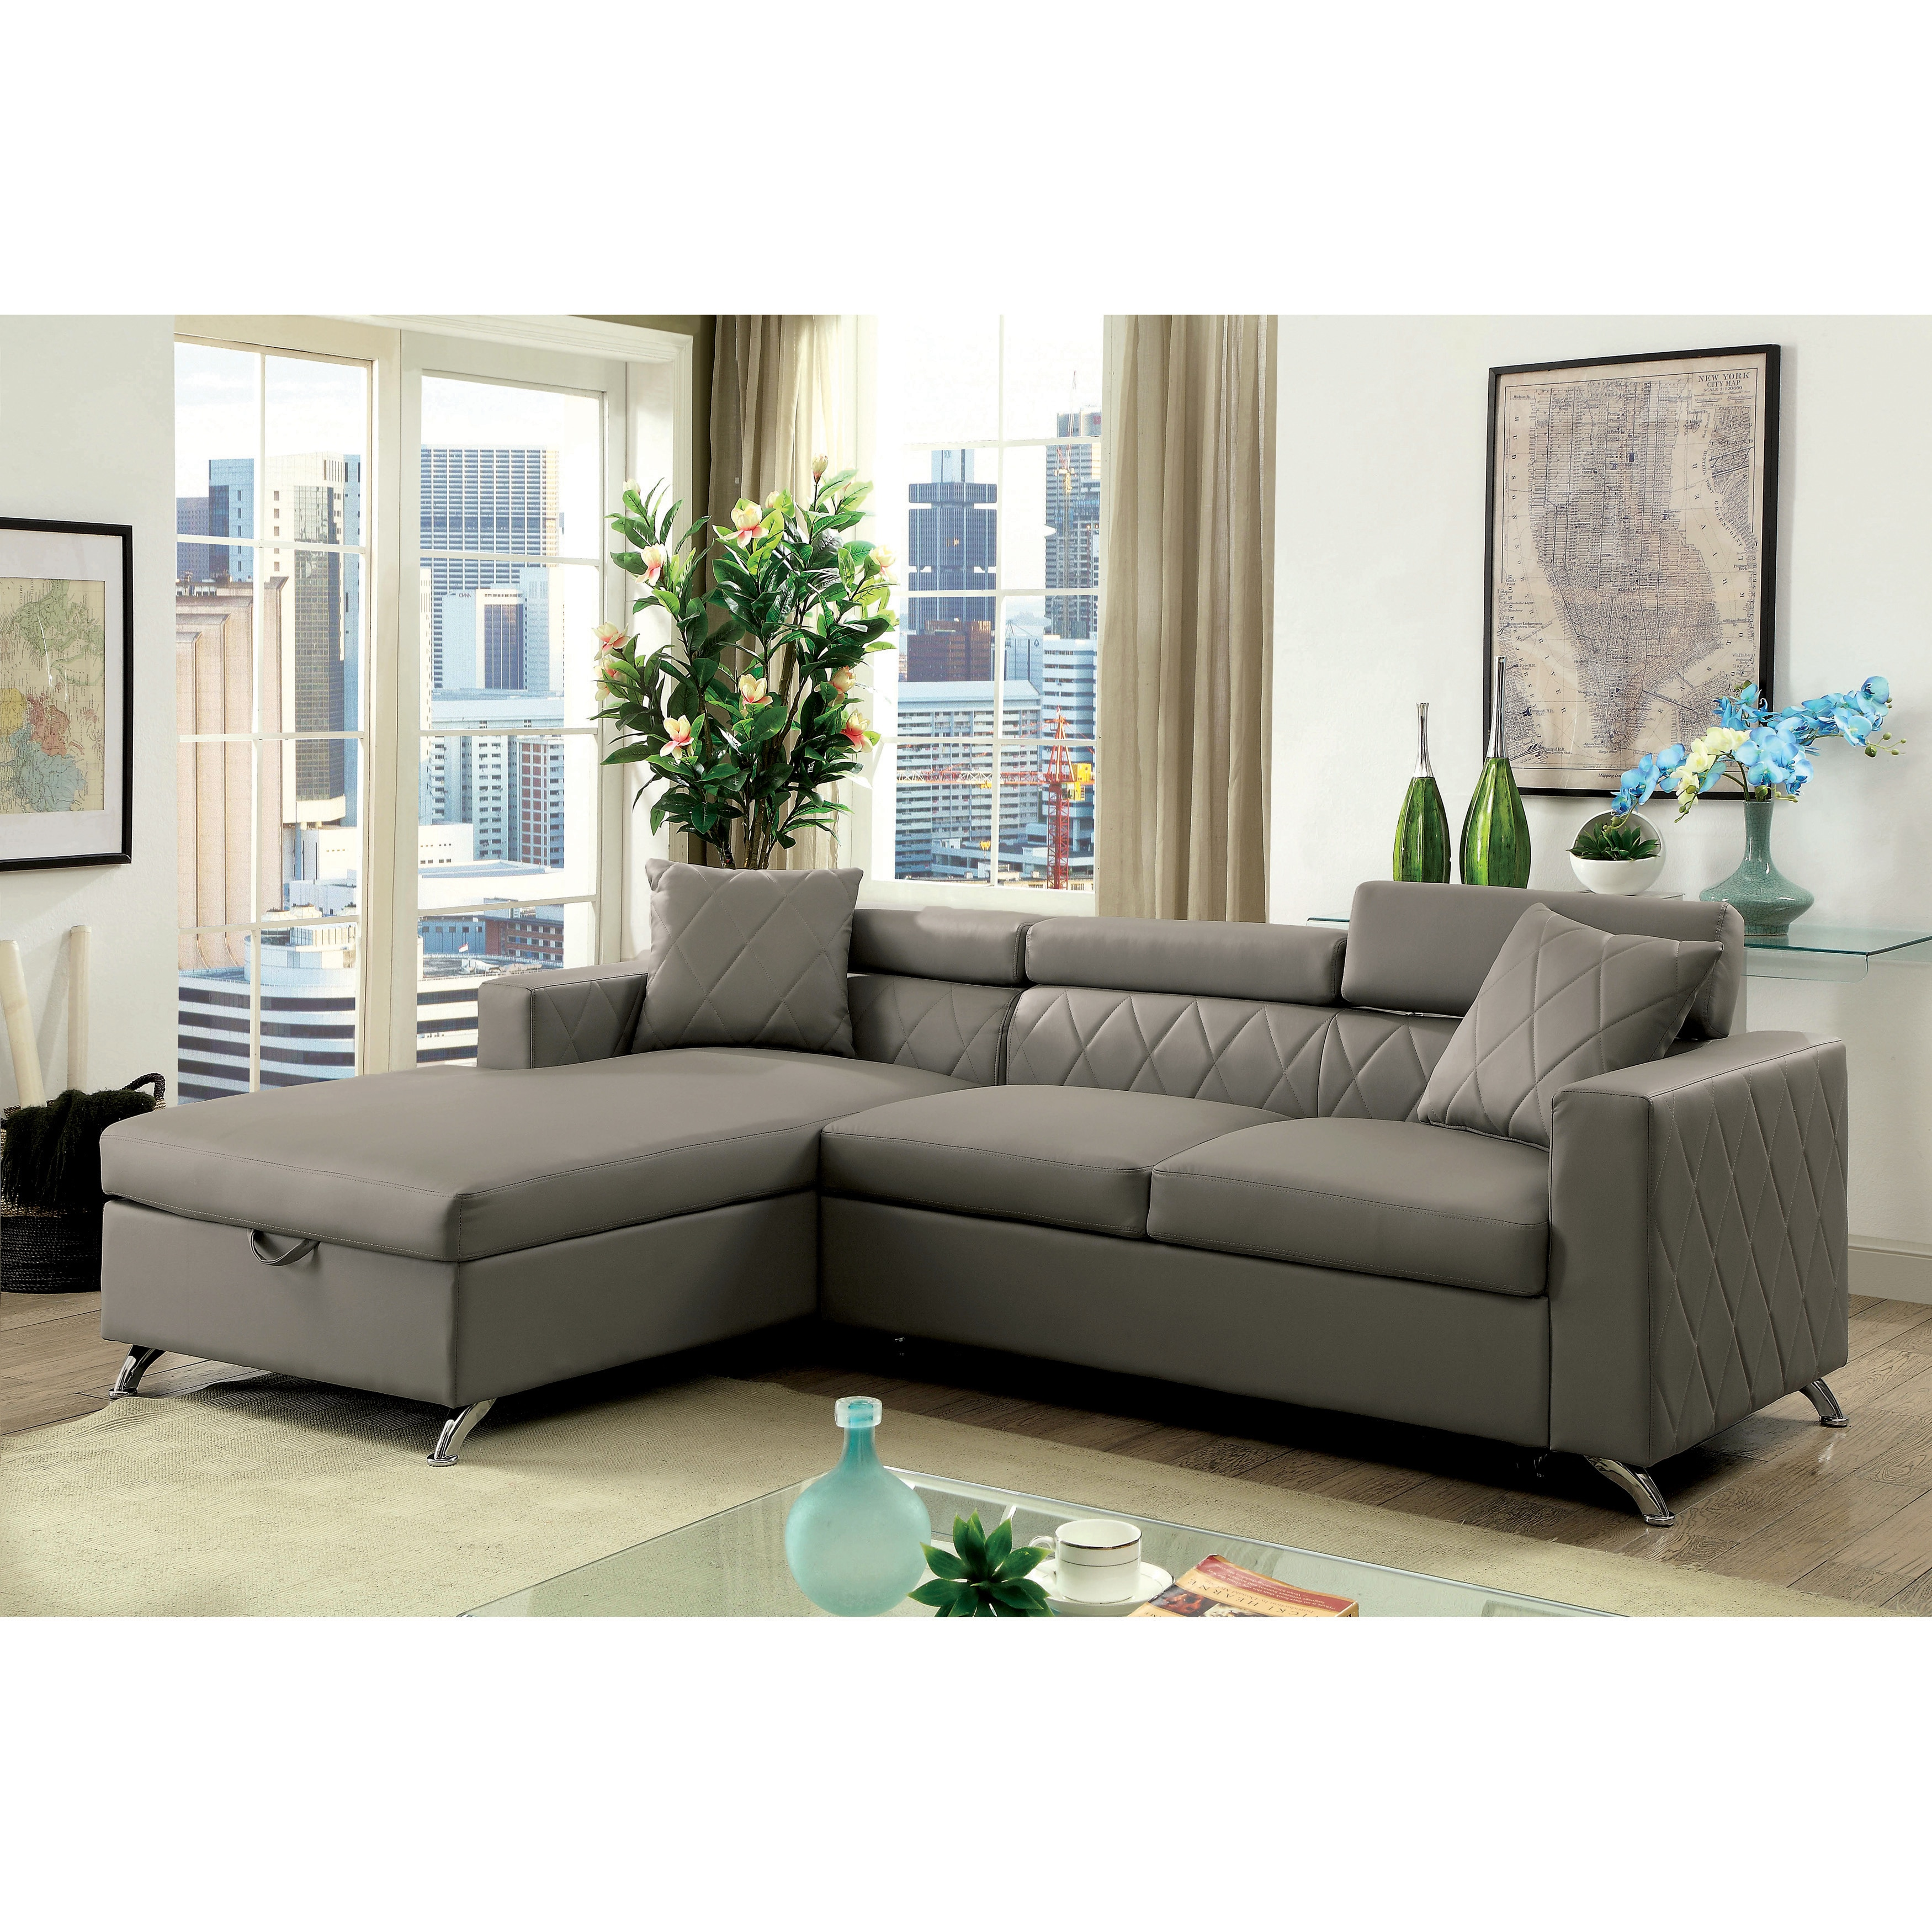 Furniture of America Klenins Contemporary Tufted Grey ...